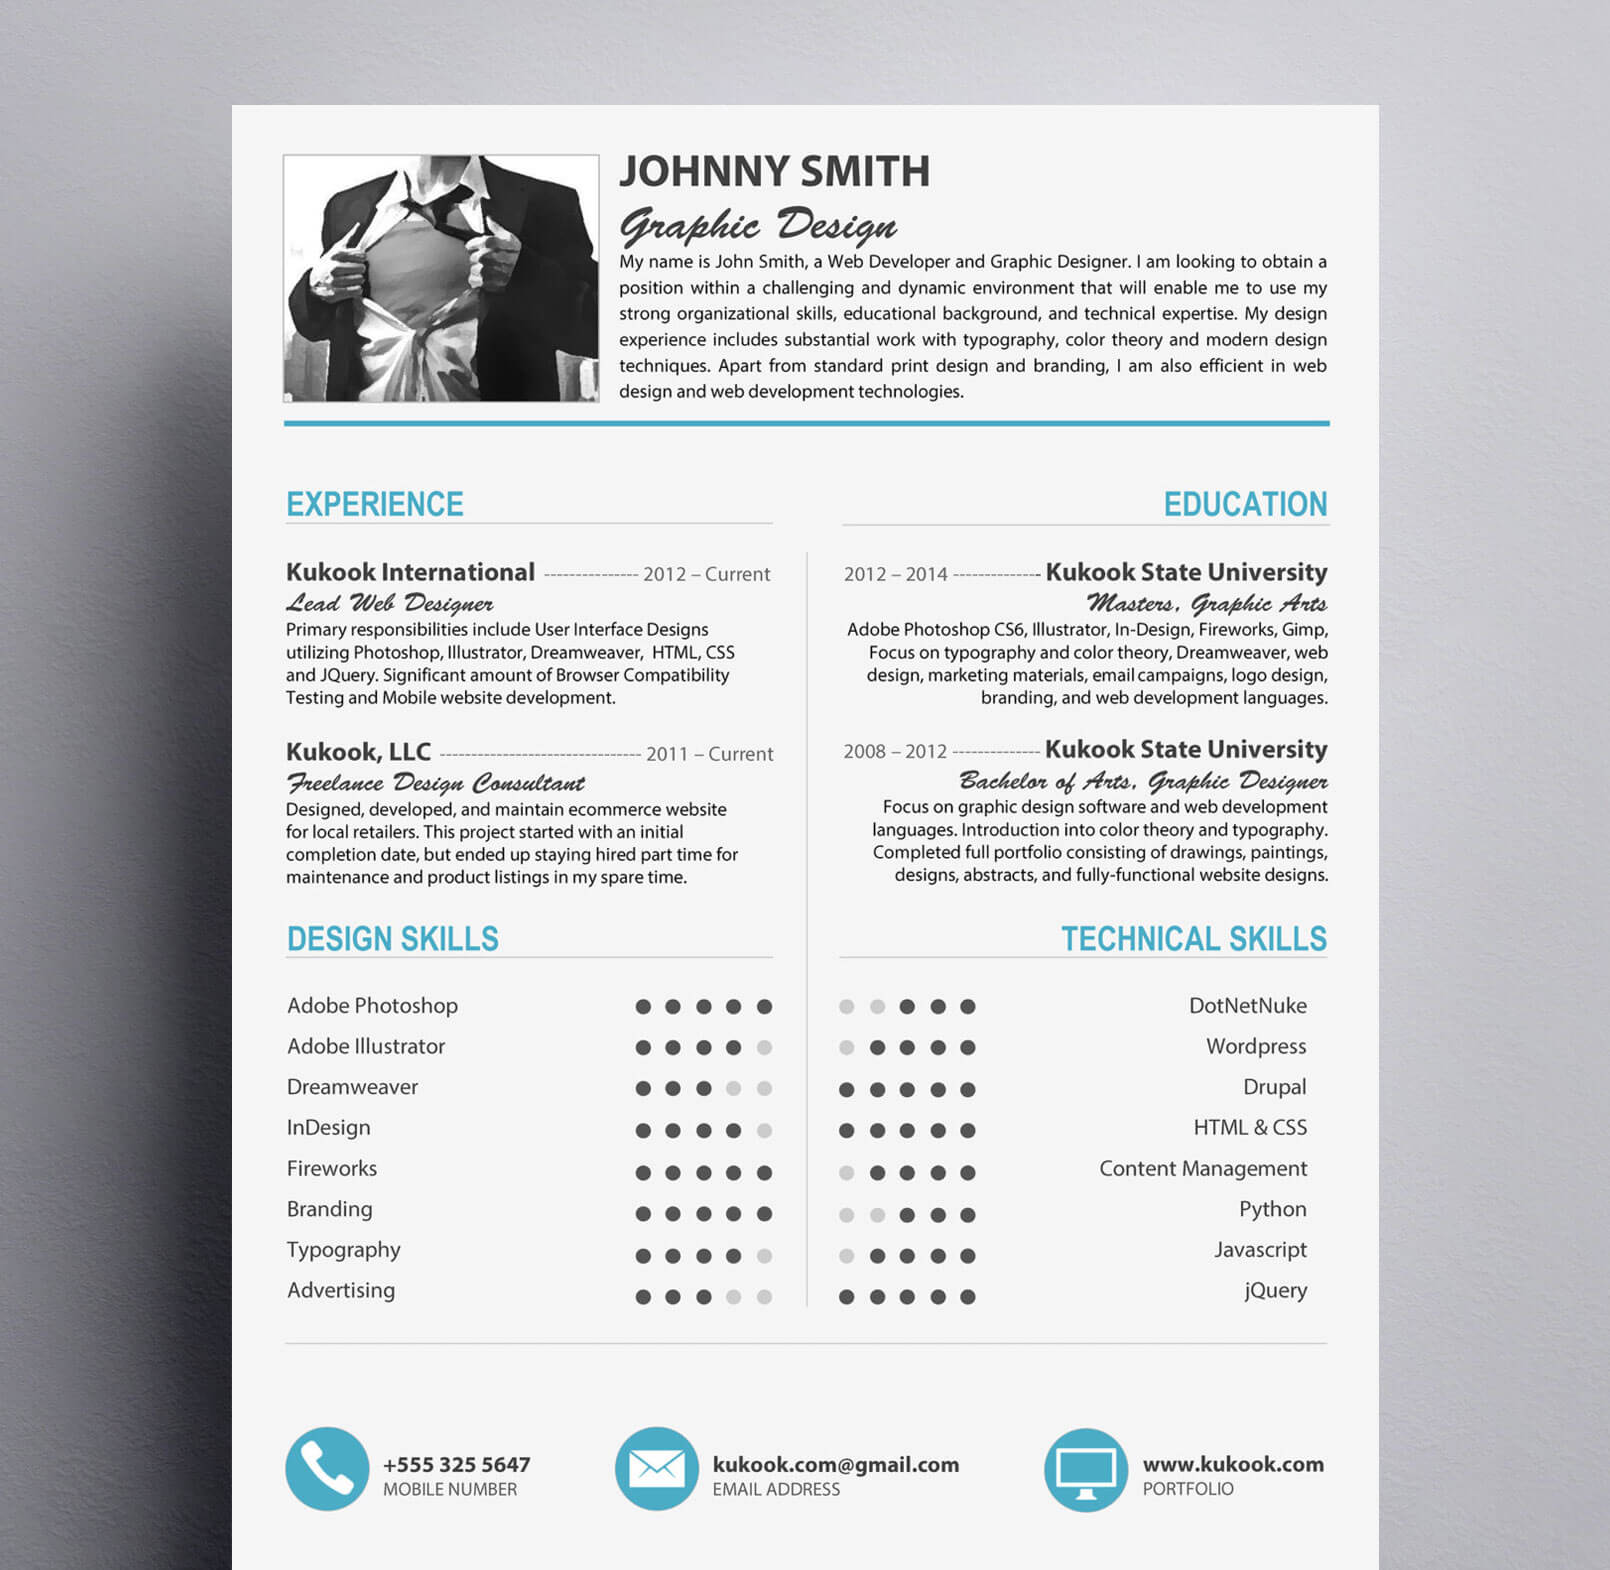 Graphic Designer Resume 2014 Modern Resume Template For Graphic Designers Kukook